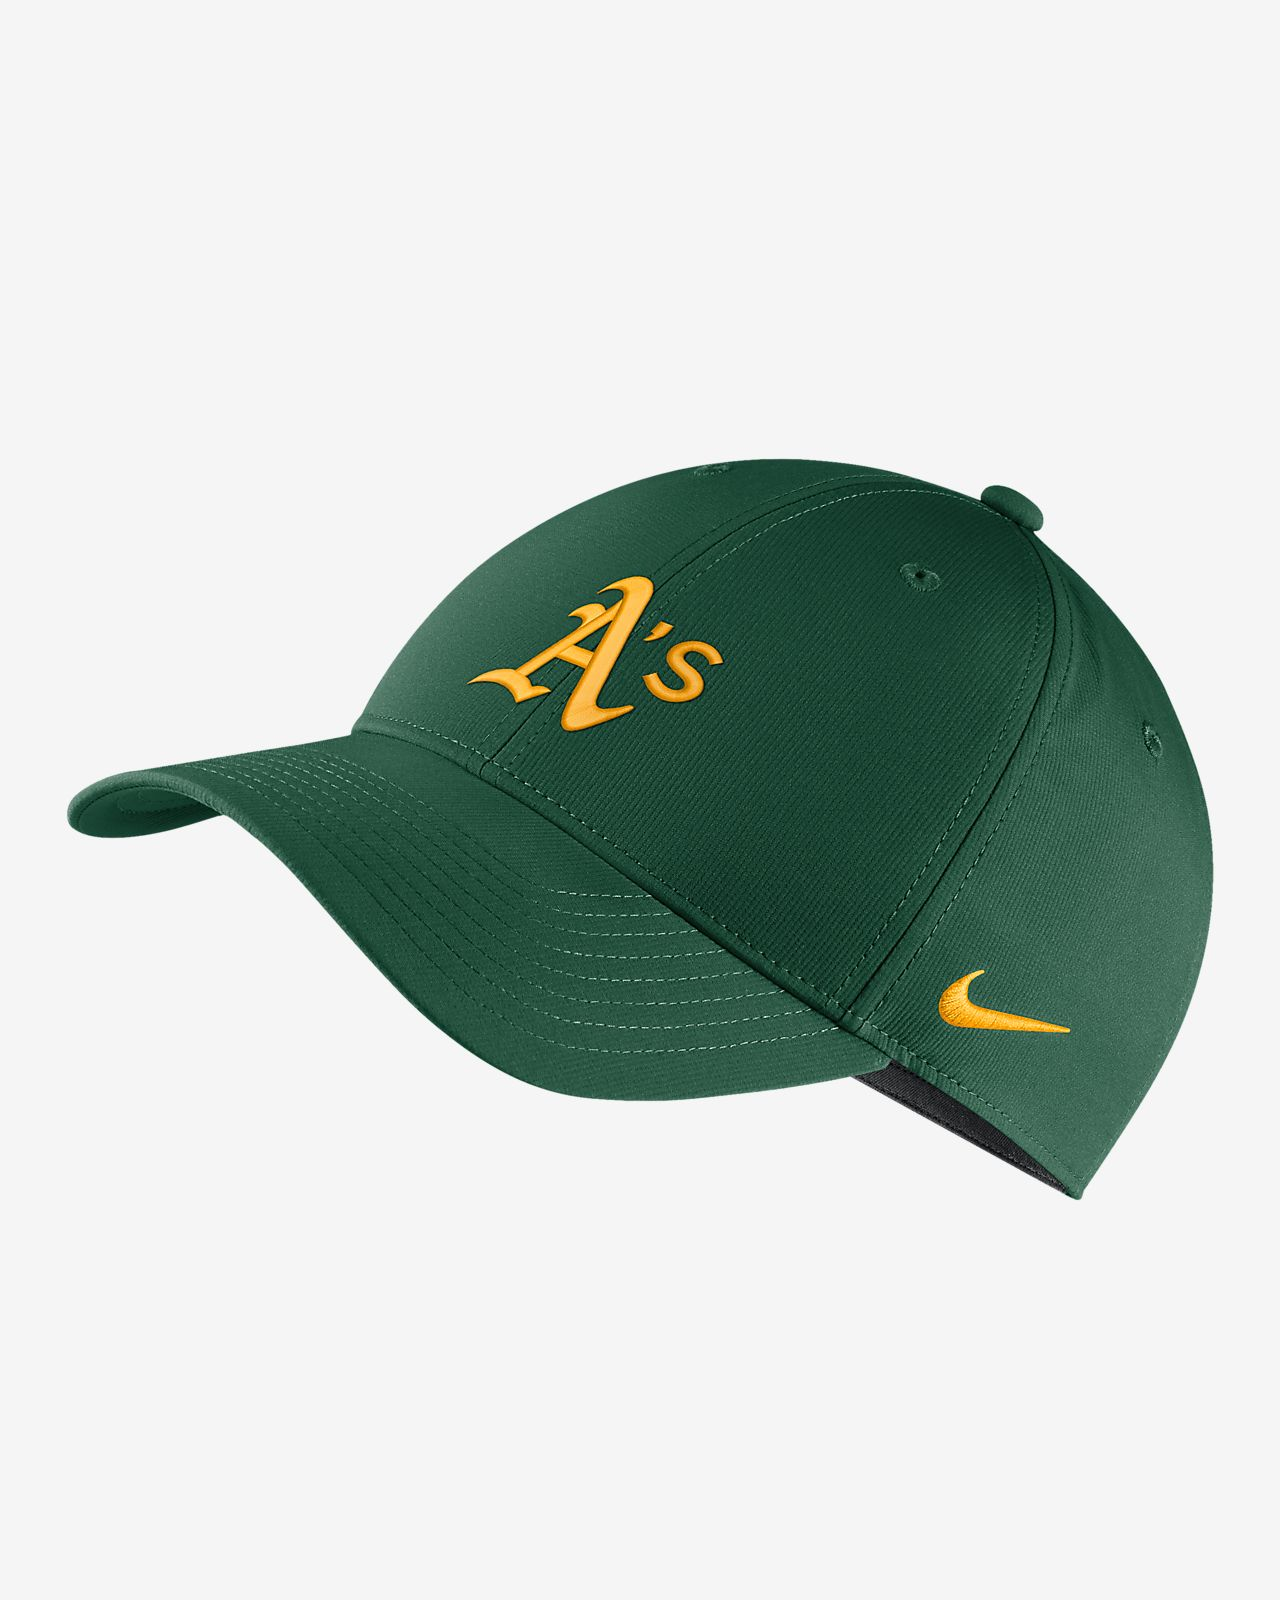 276af4dde Nike Dri-FIT Legacy91 (MLB A's) Adjustable Hat. Nike.com